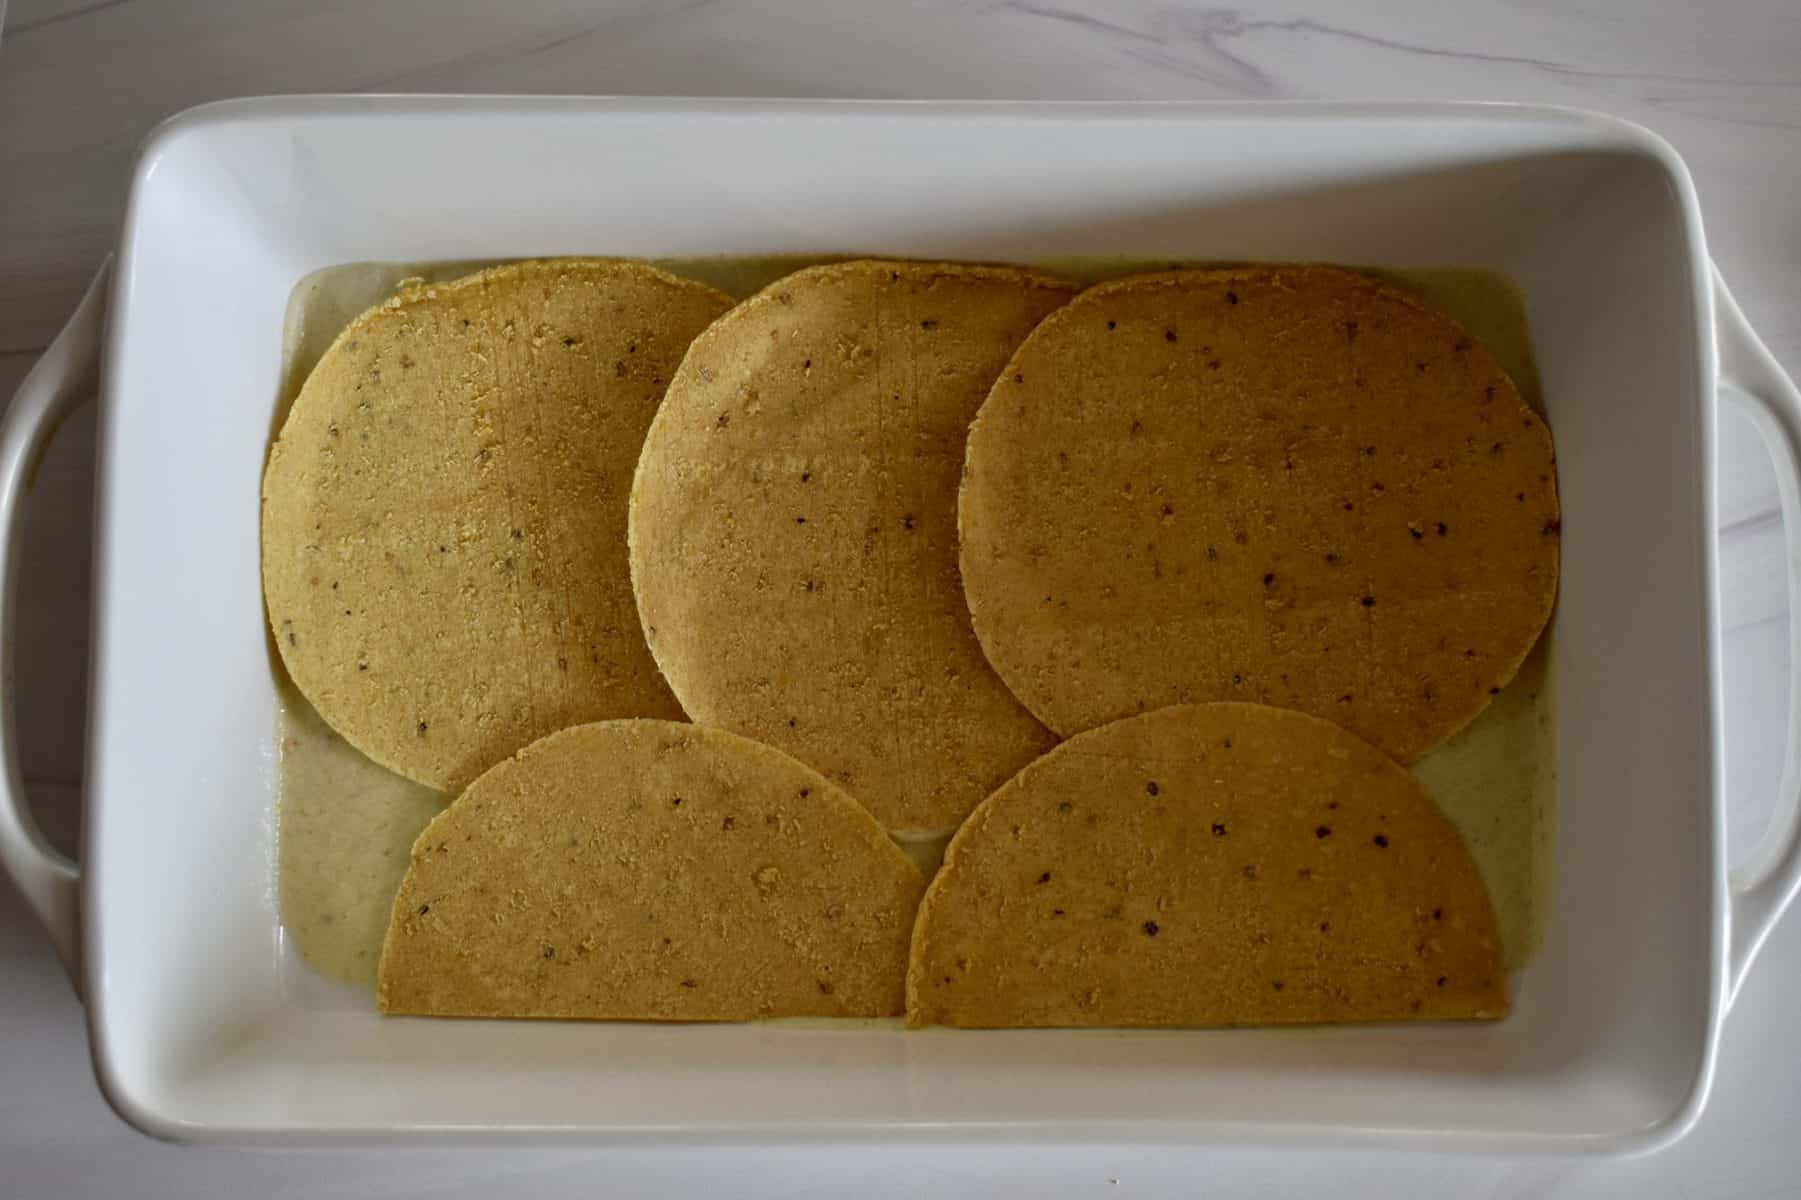 tortilla layered on the sauce.